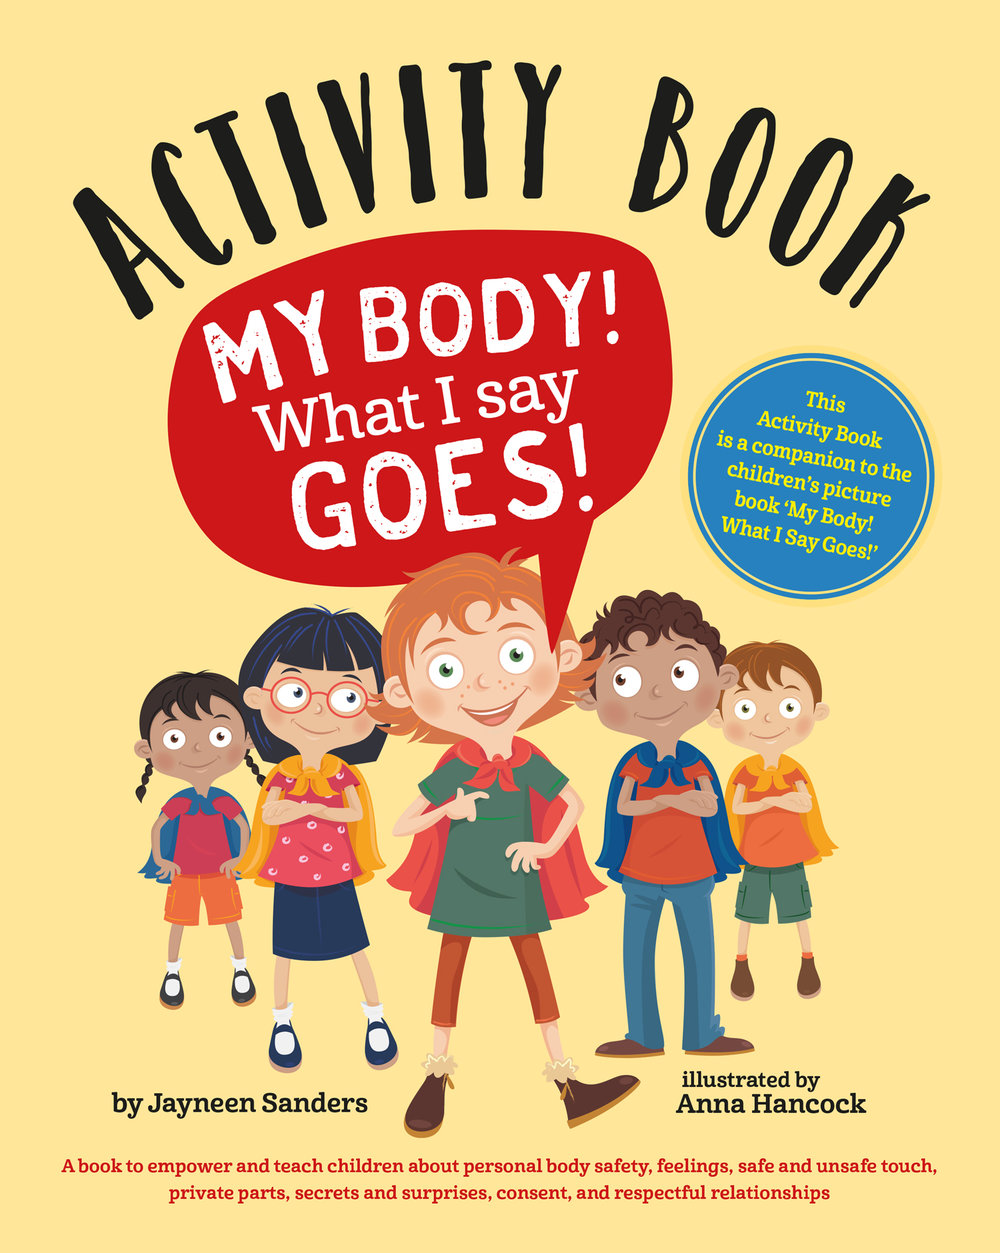 My Body! What I Say Goes! Activity Book